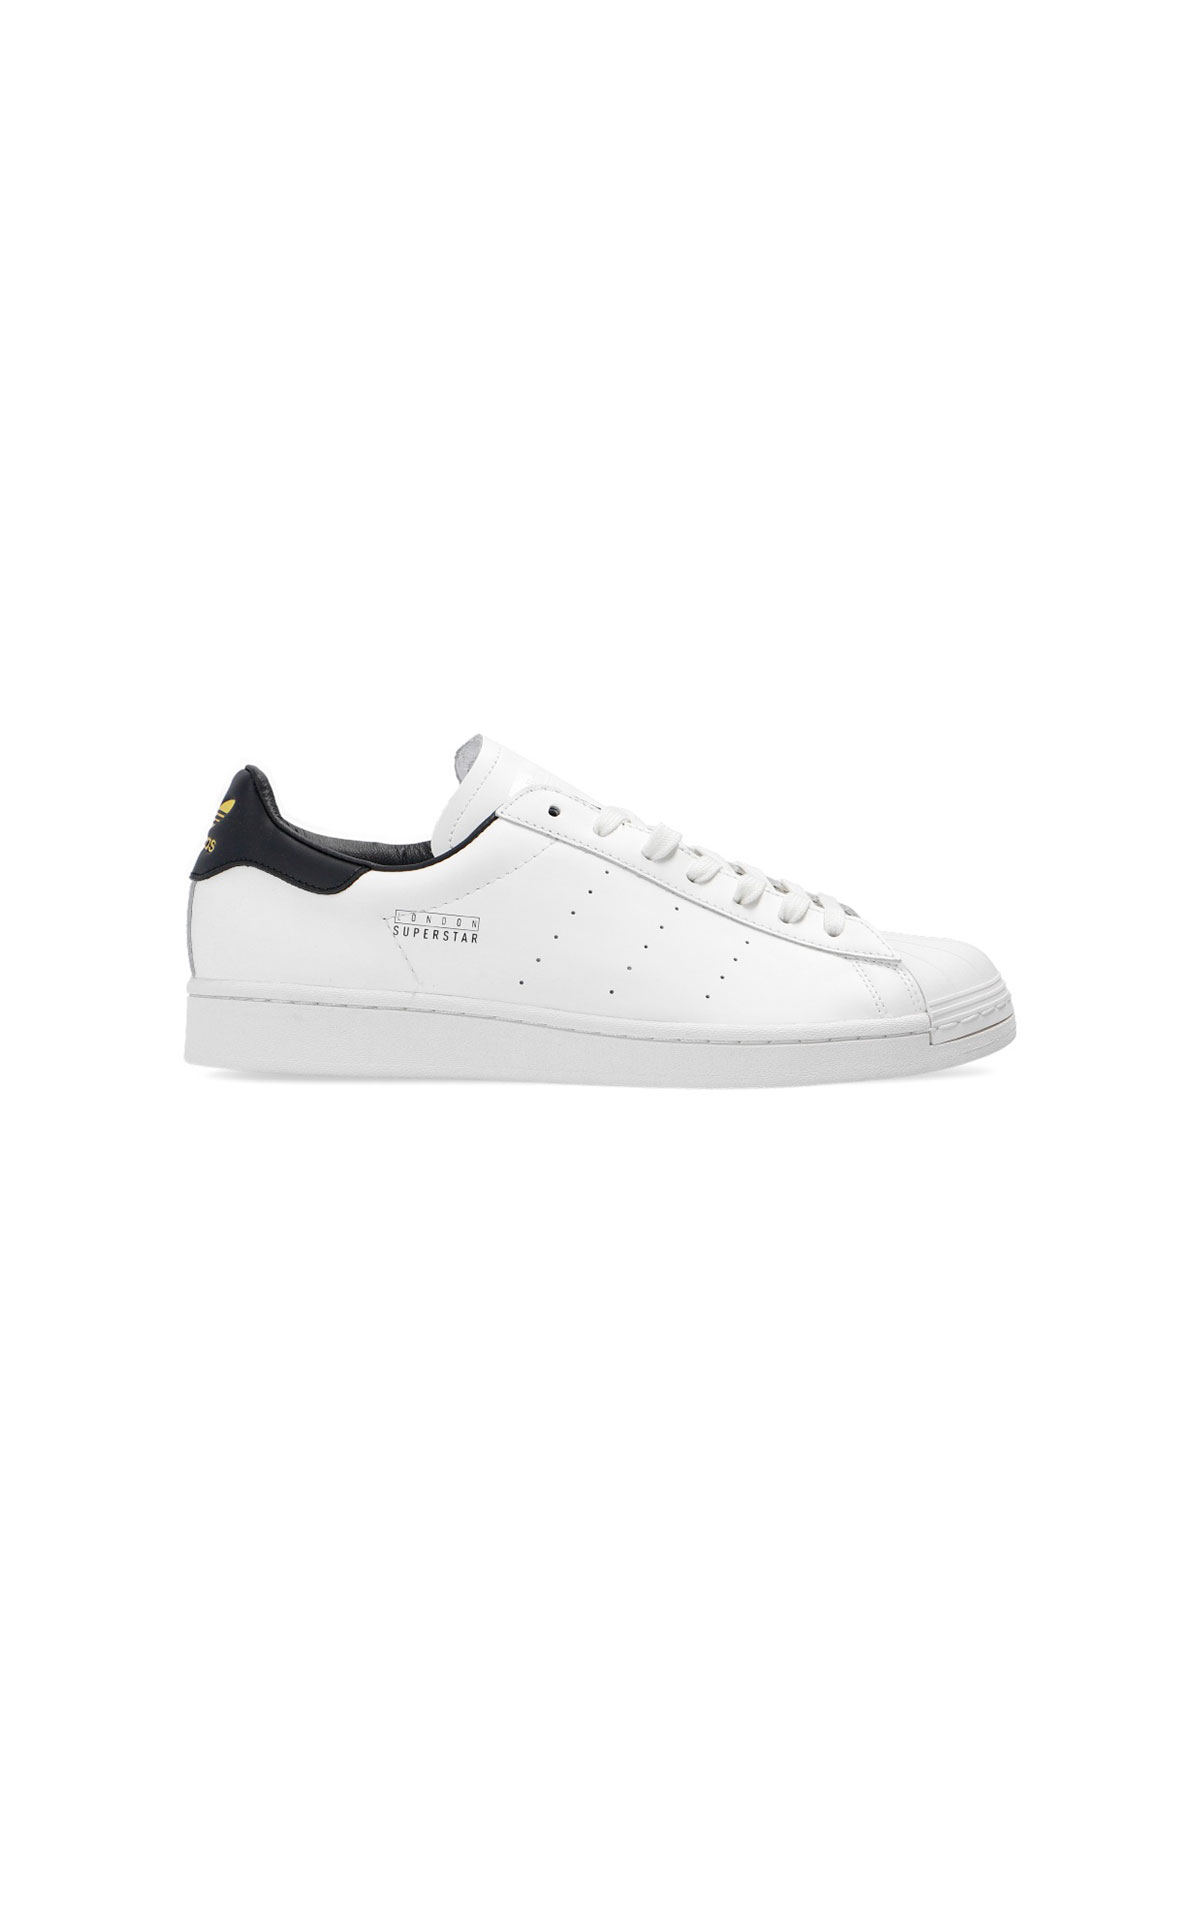 White Superstar sneaker adidas